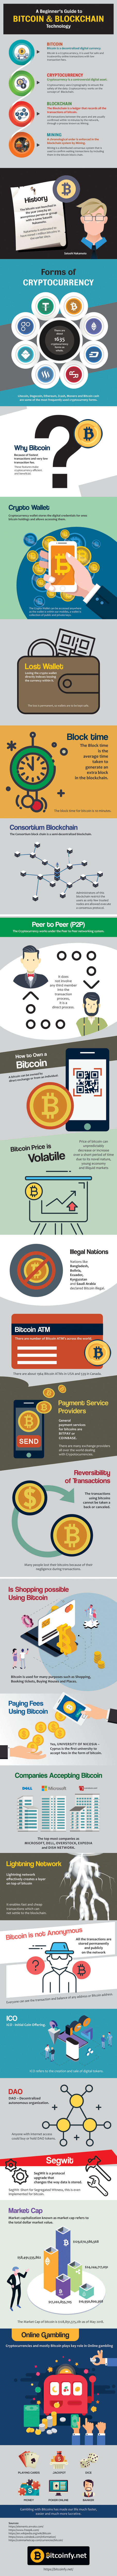 infographics from Bitcoinfy.net